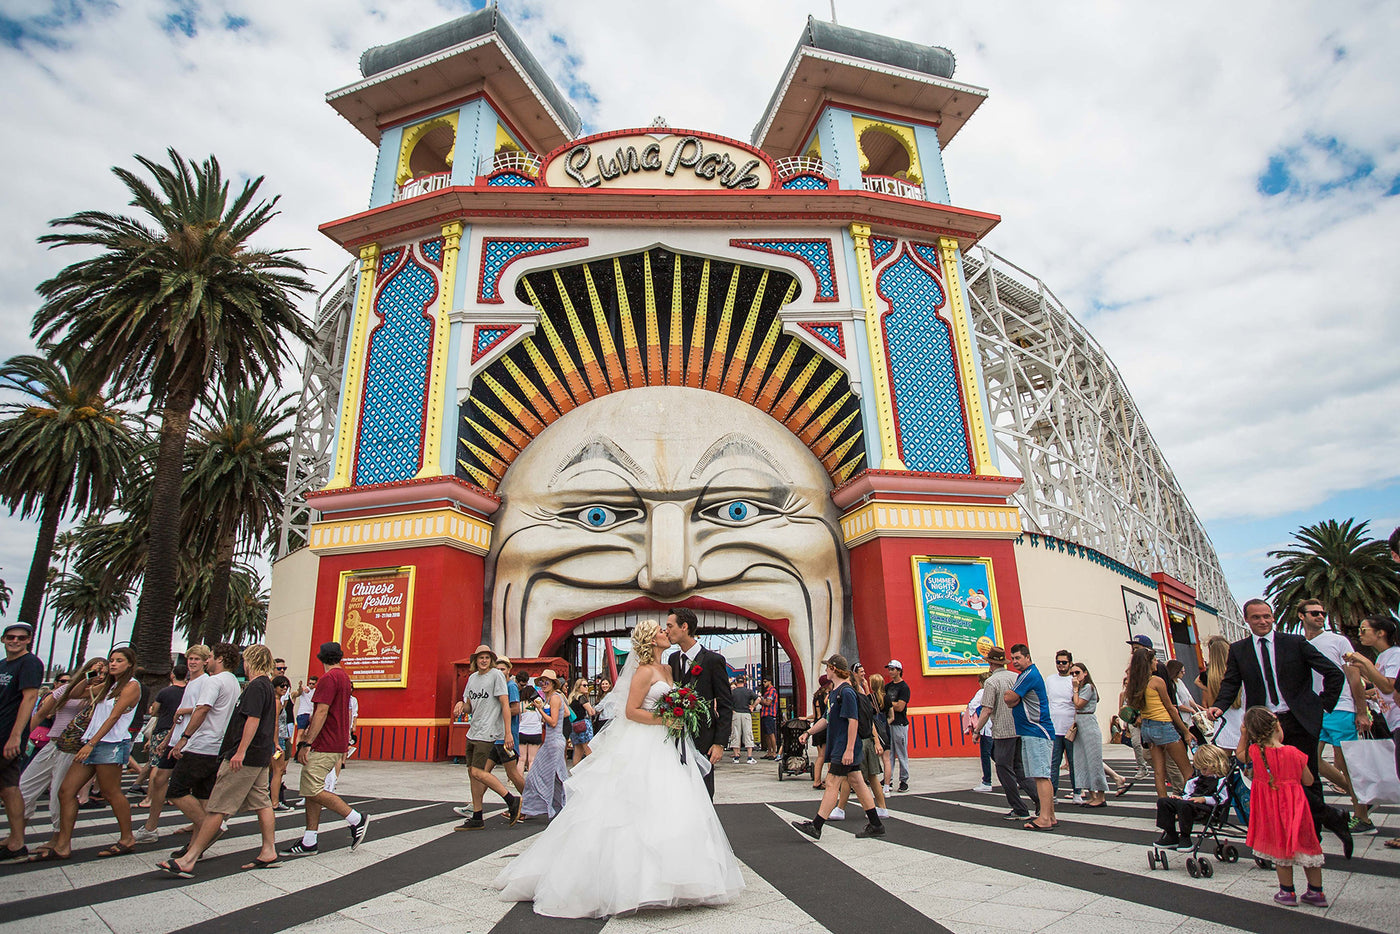 ST KILDA FESTIVAL WEDDING SPONSORED BY ETERNAL BRIDAL